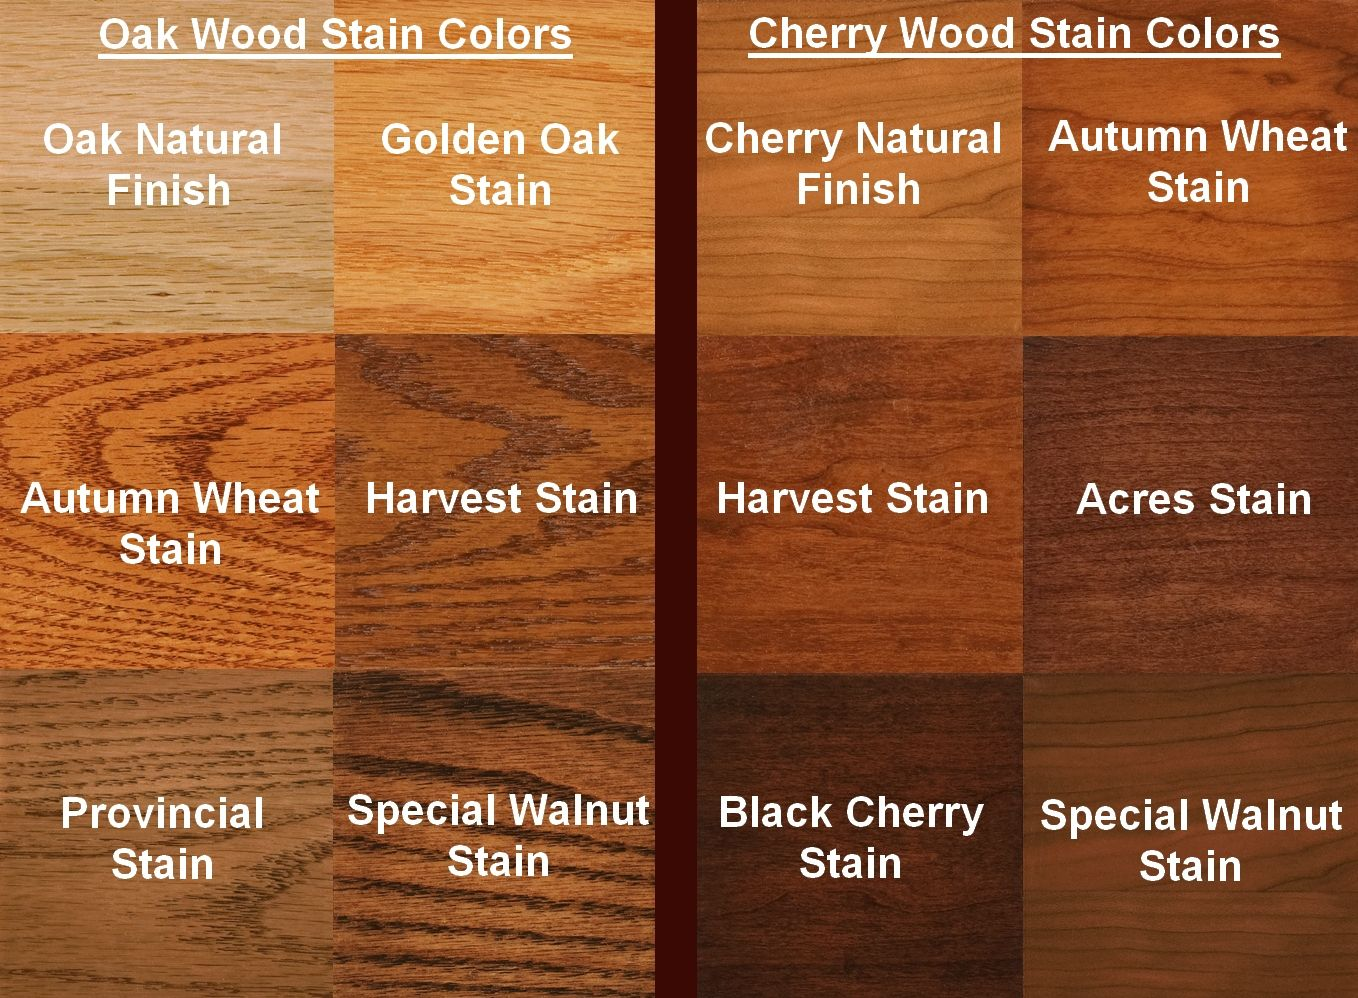 Pin By Ambiance On Home Designer Cherry Wood Stain Staining